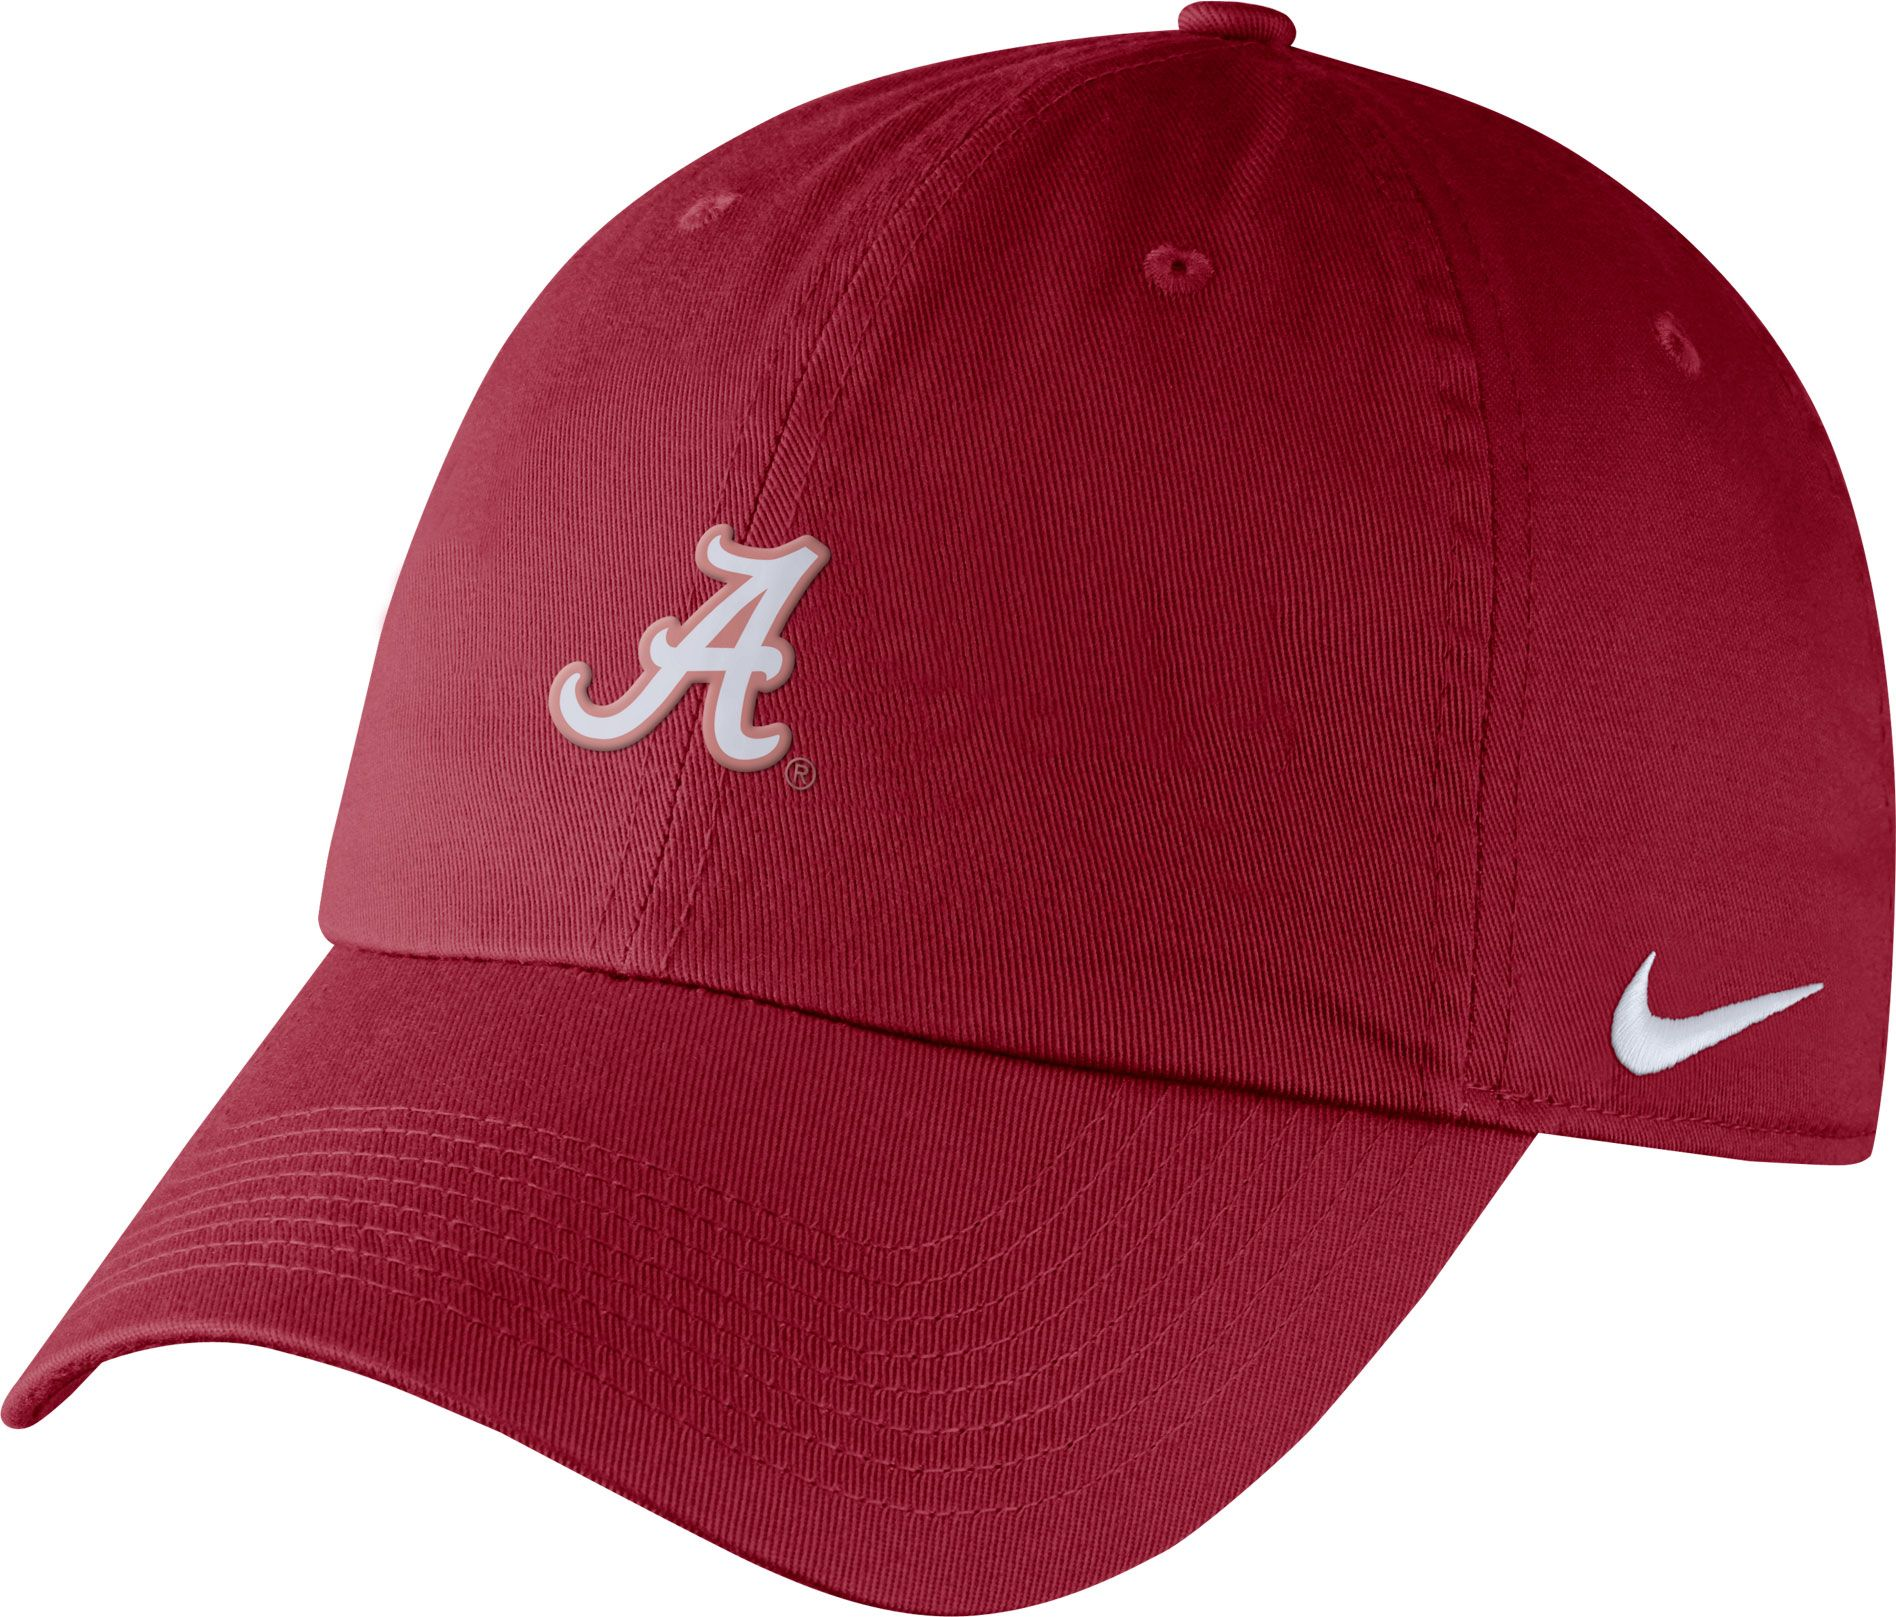 550014a1605 ... discount code for nike mens alabama crimson tide crimson heritage86  small logo adjustable hat 64b45 a7123